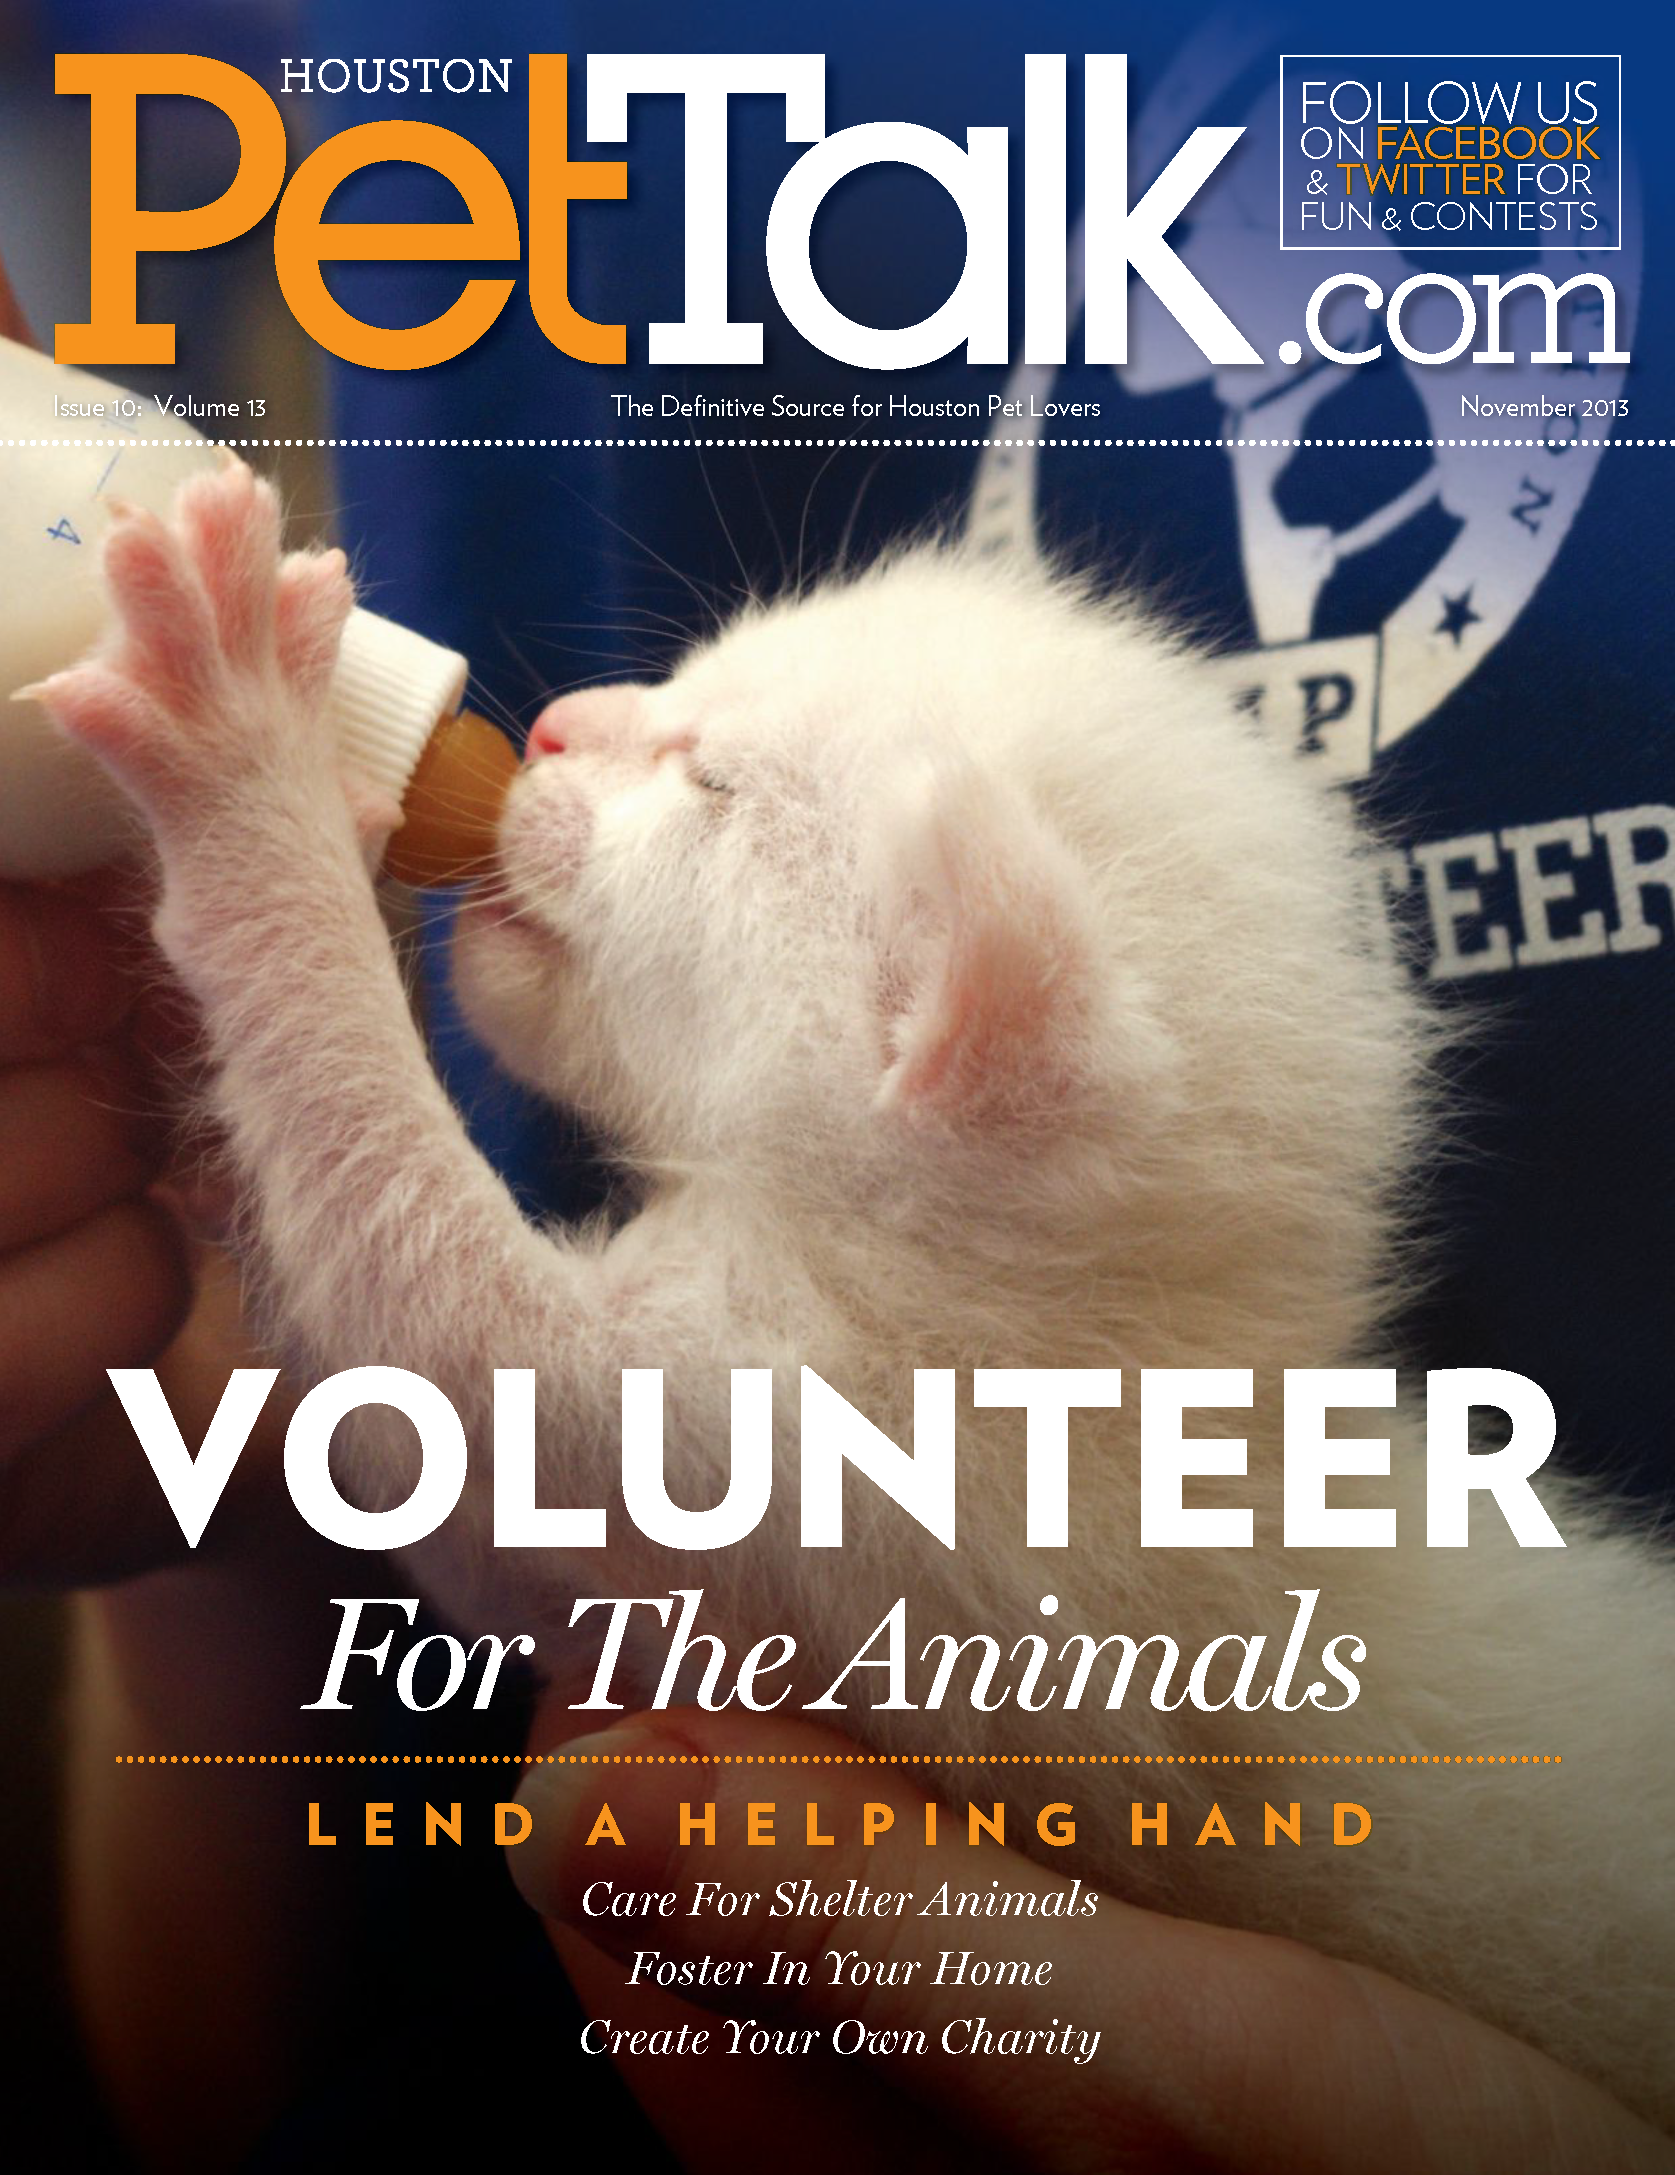 November 2013 Digital Issue of Houston PetTalk